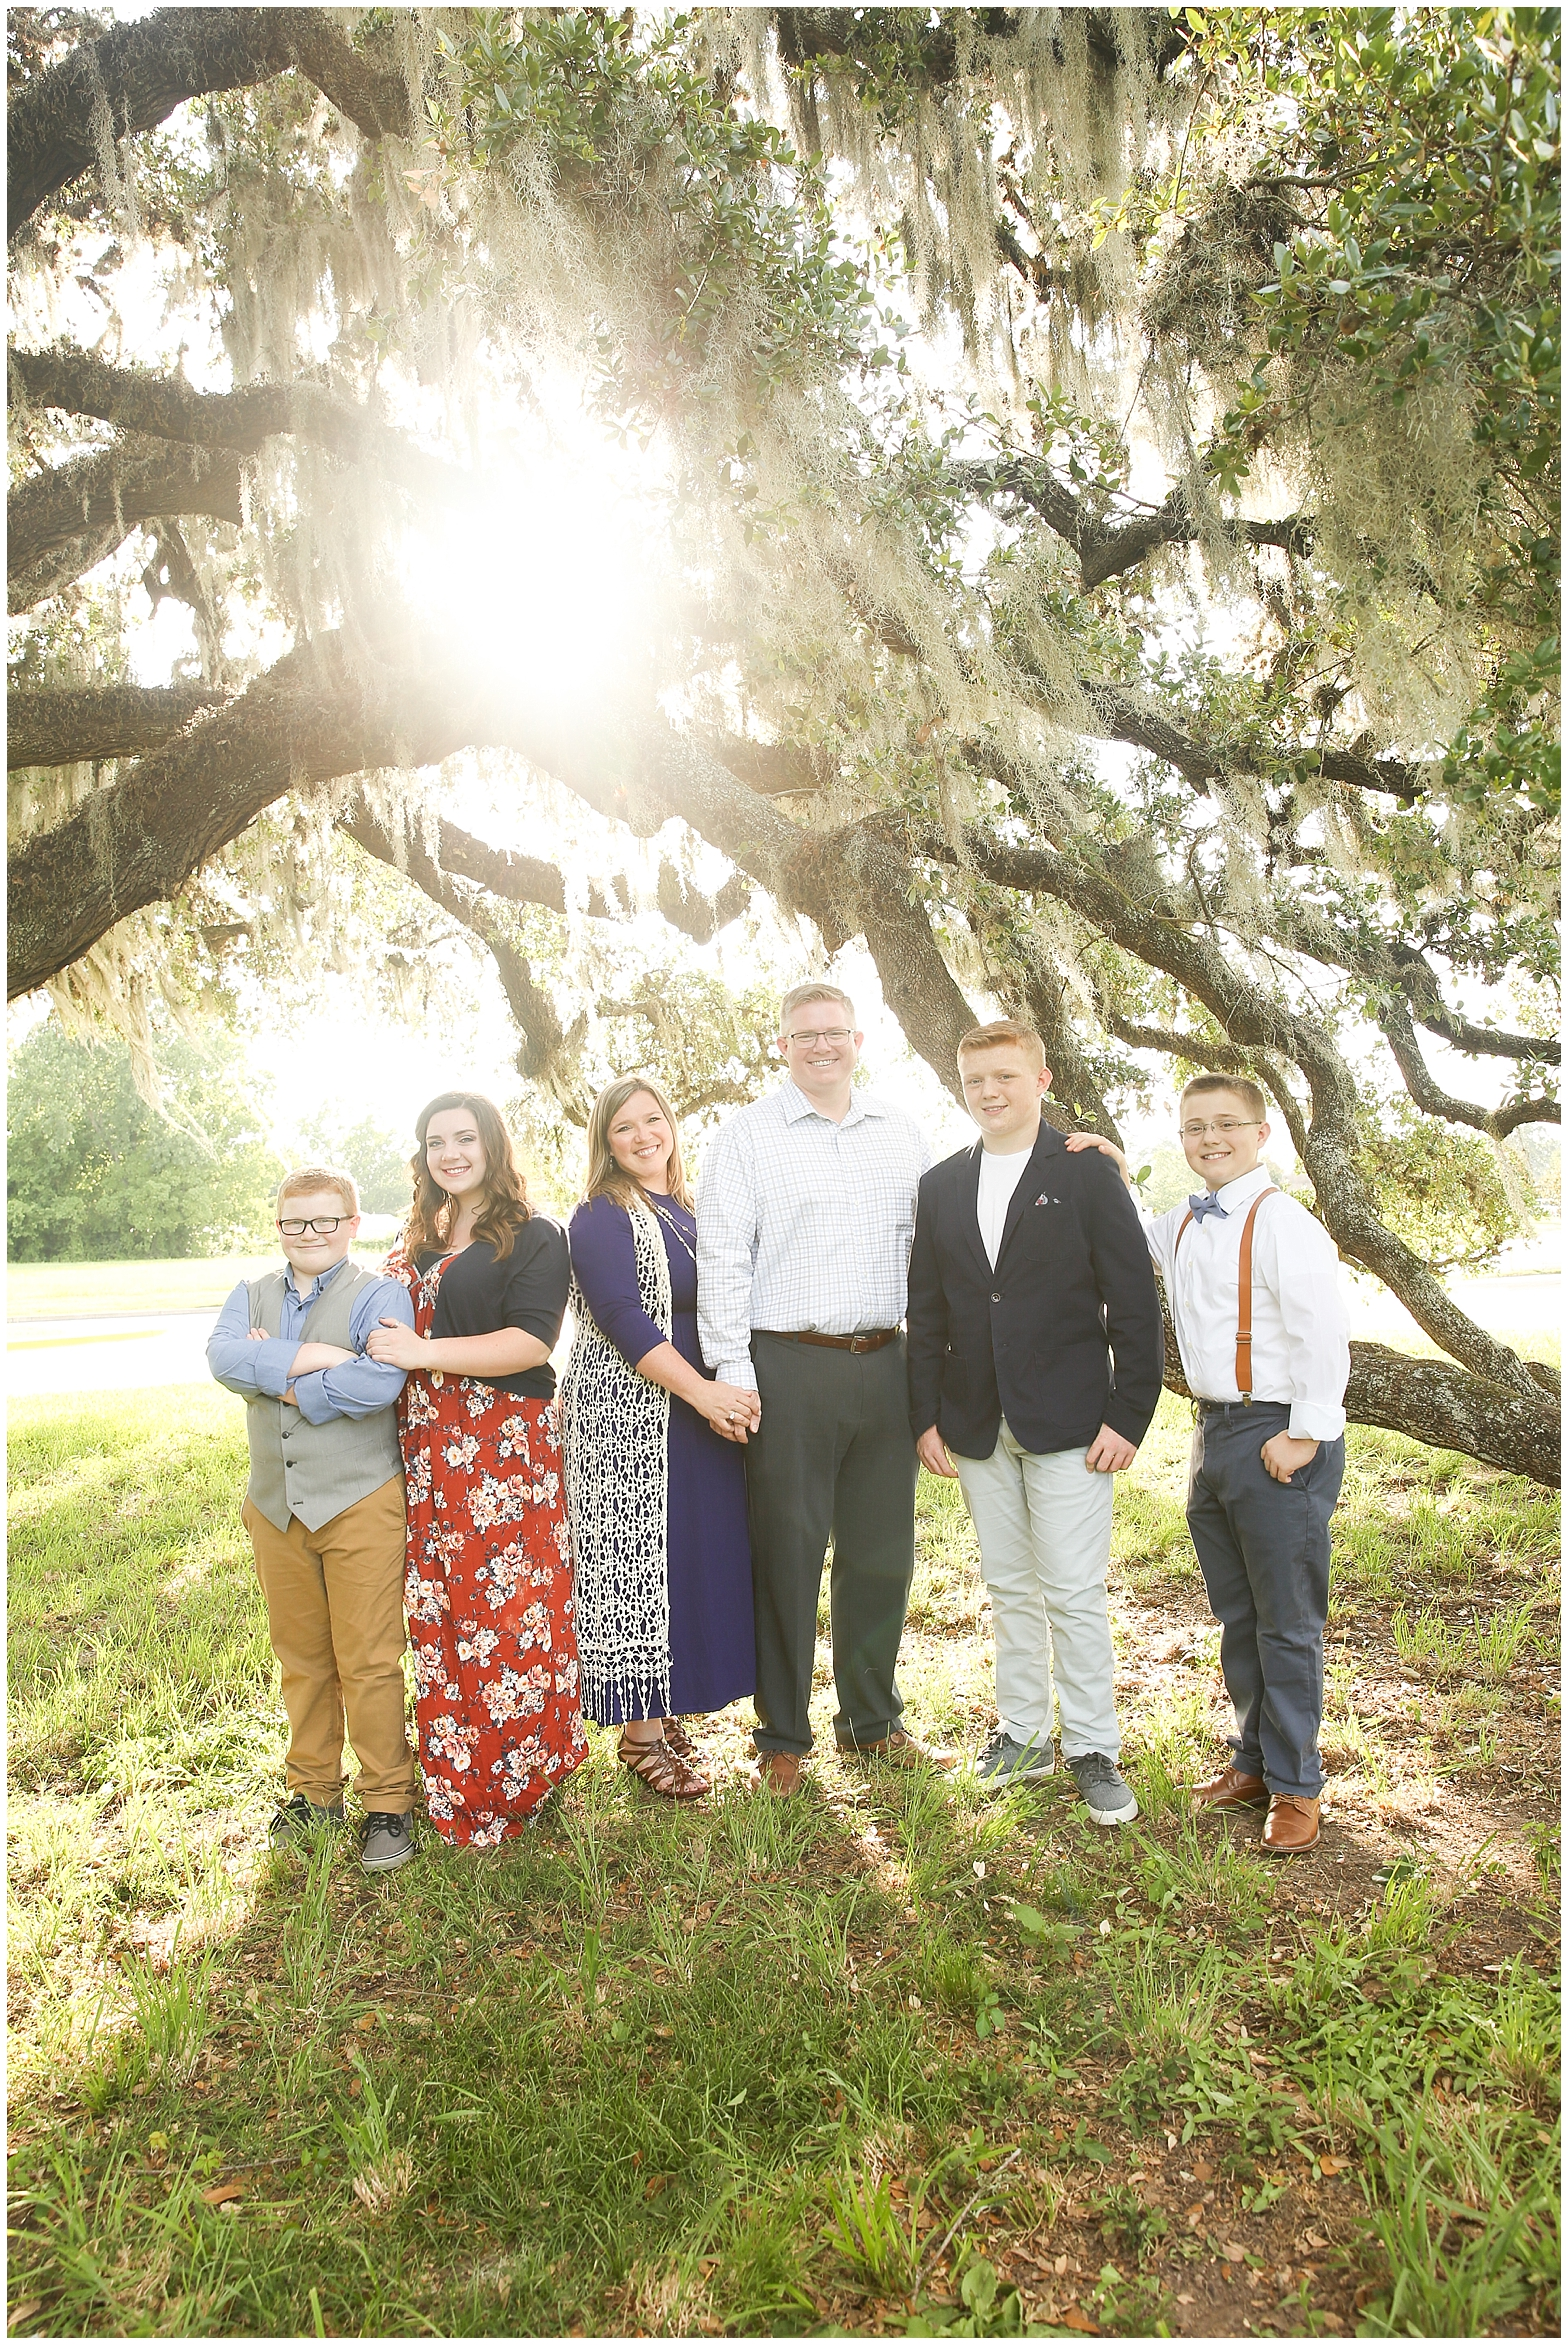 Rasmussens. The Woodlands Family Photography.